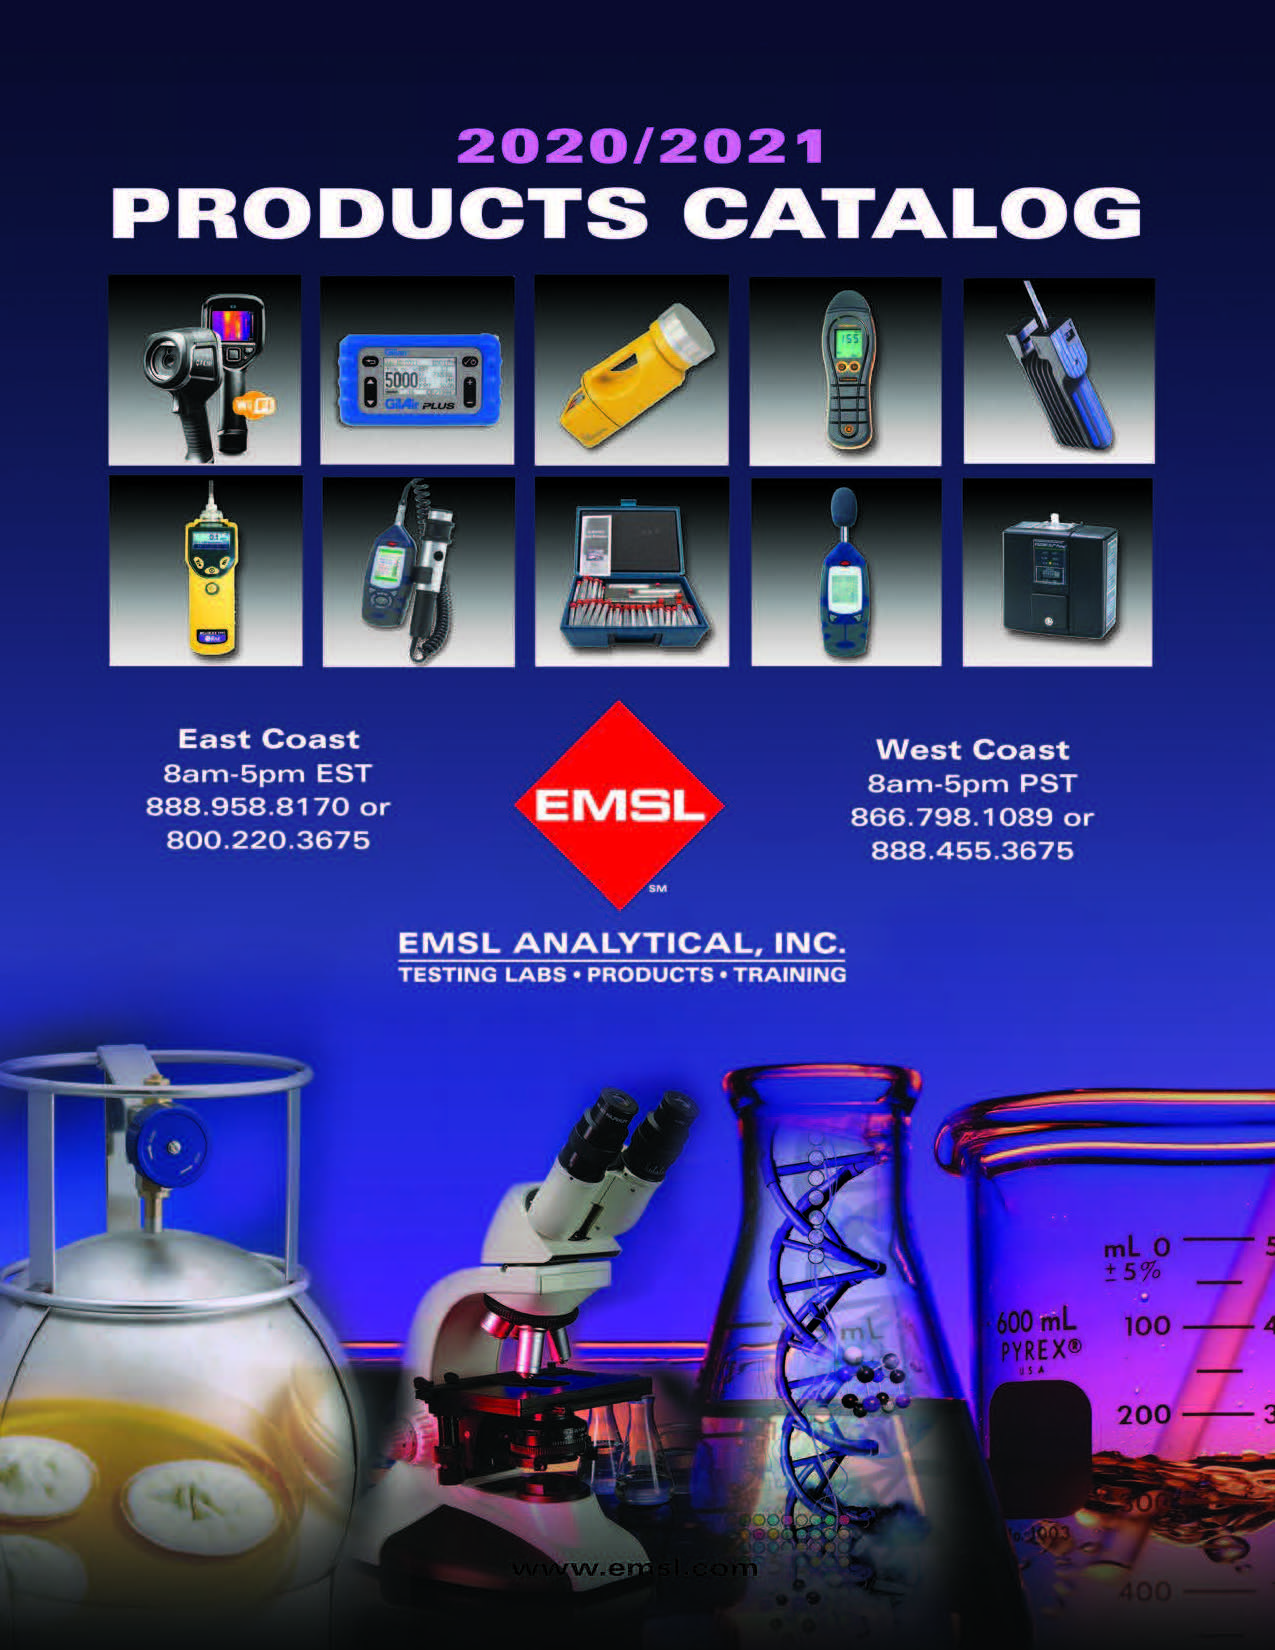 EMSL Products Catalog 2020